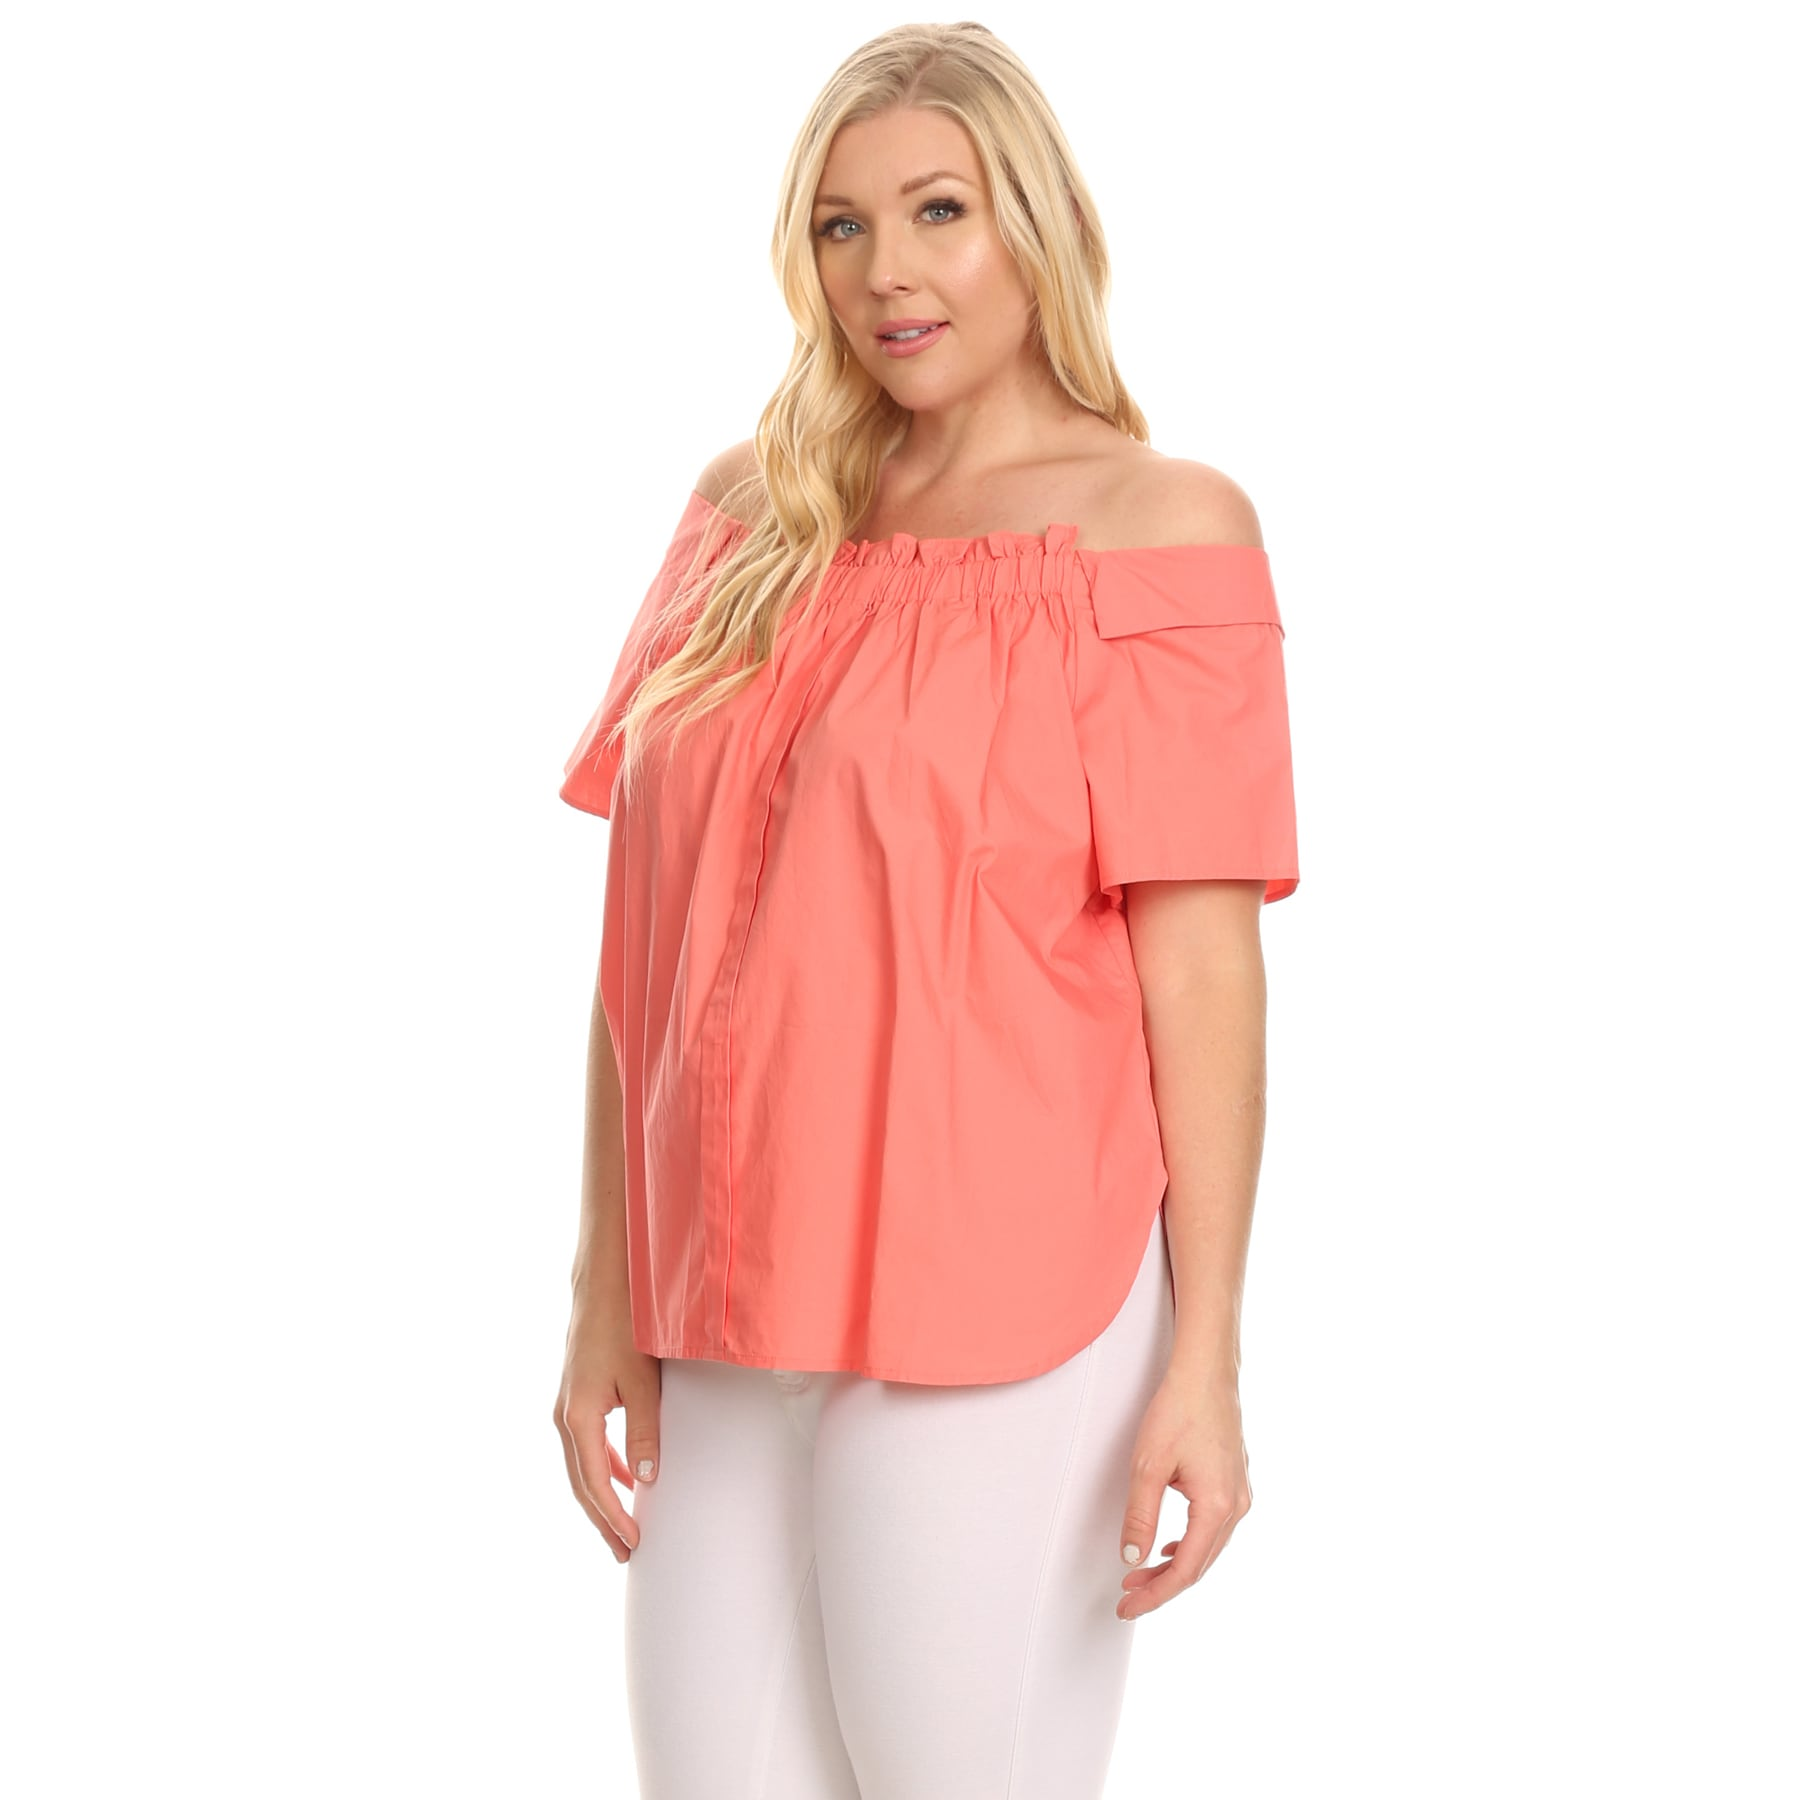 c4ae23f9b40 Shop Xehar Women s Plus Size Ruffle Front Off Shoulder Blouse Top - Free  Shipping On Orders Over  45 - Overstock - 16345756